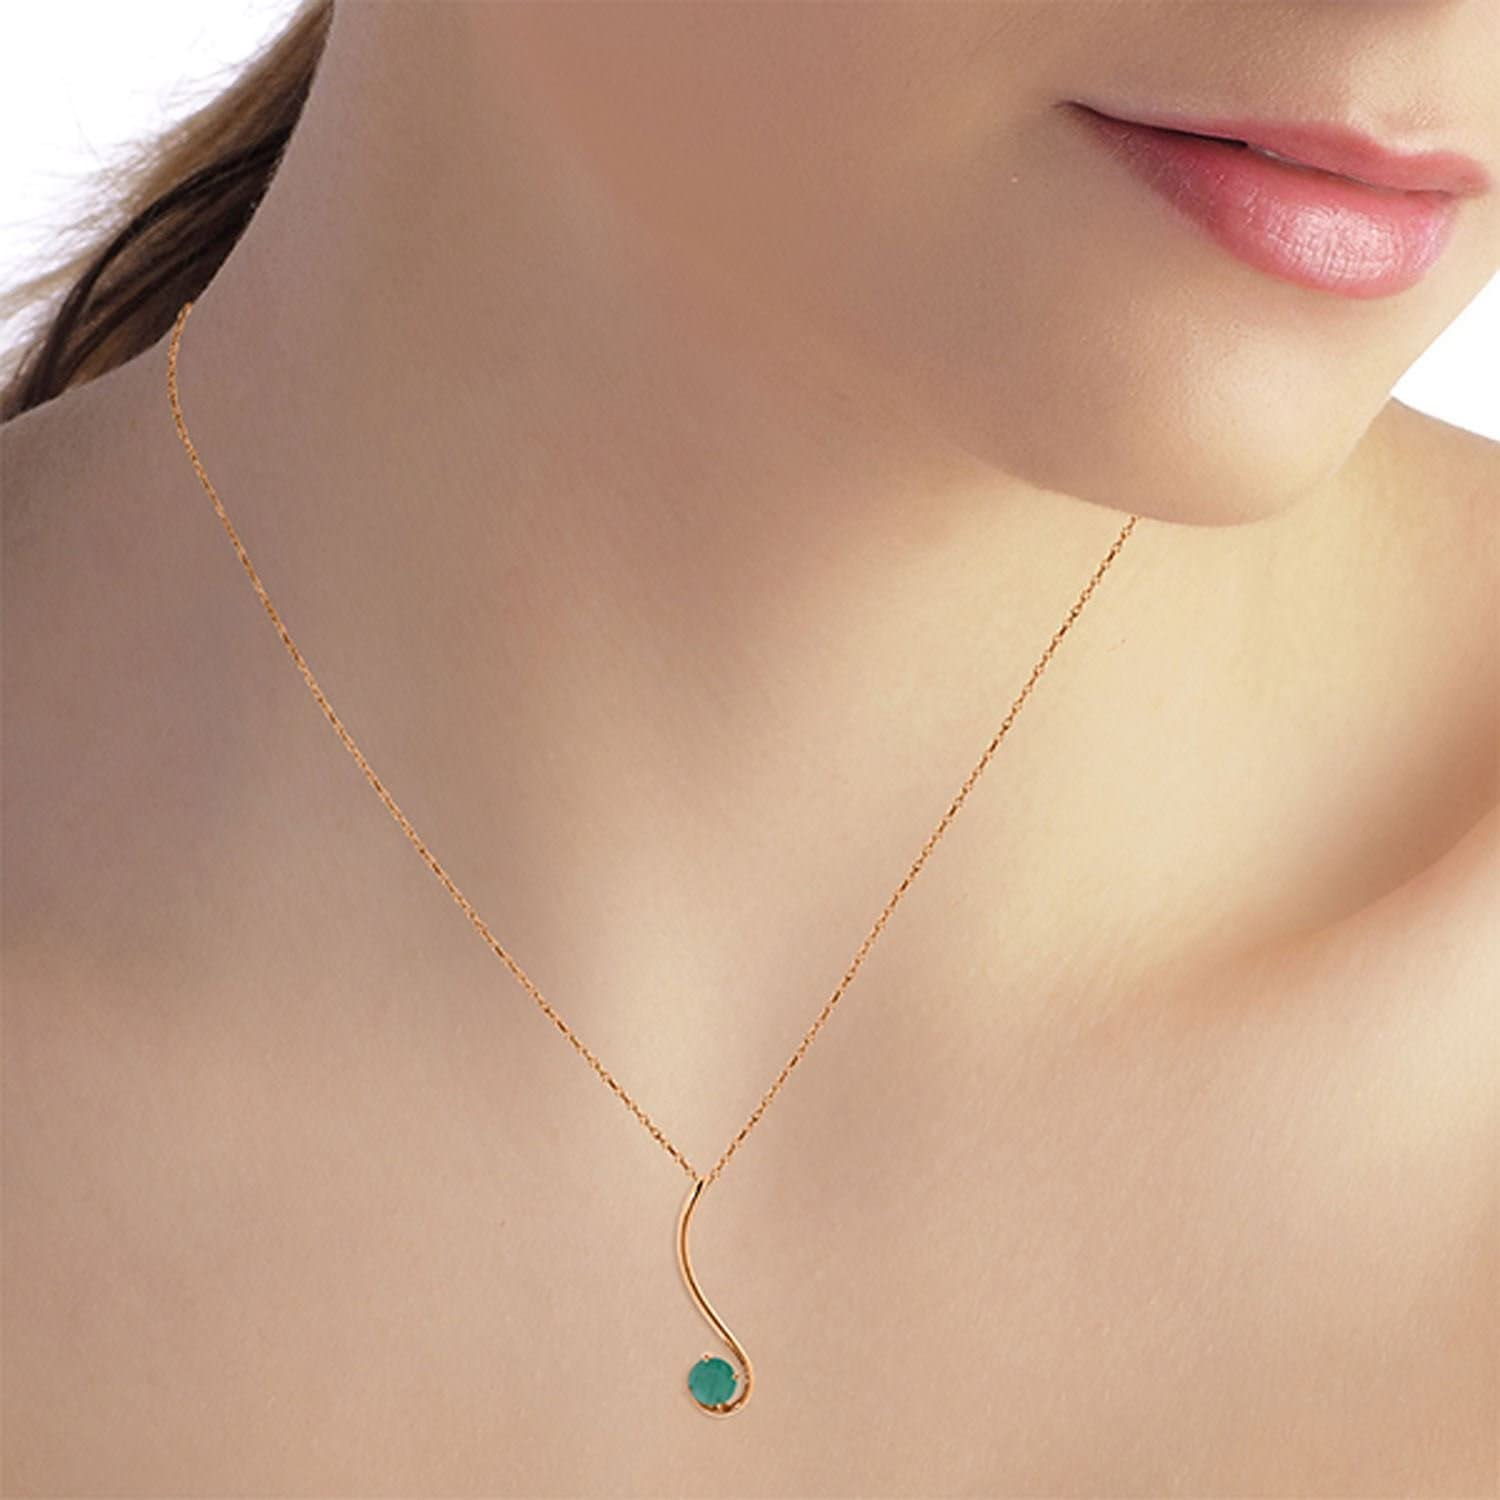 ALARRI 0.55 CTW 14K Solid Rose Gold Flirt Emerald Necklace with 18 Inch Chain Length